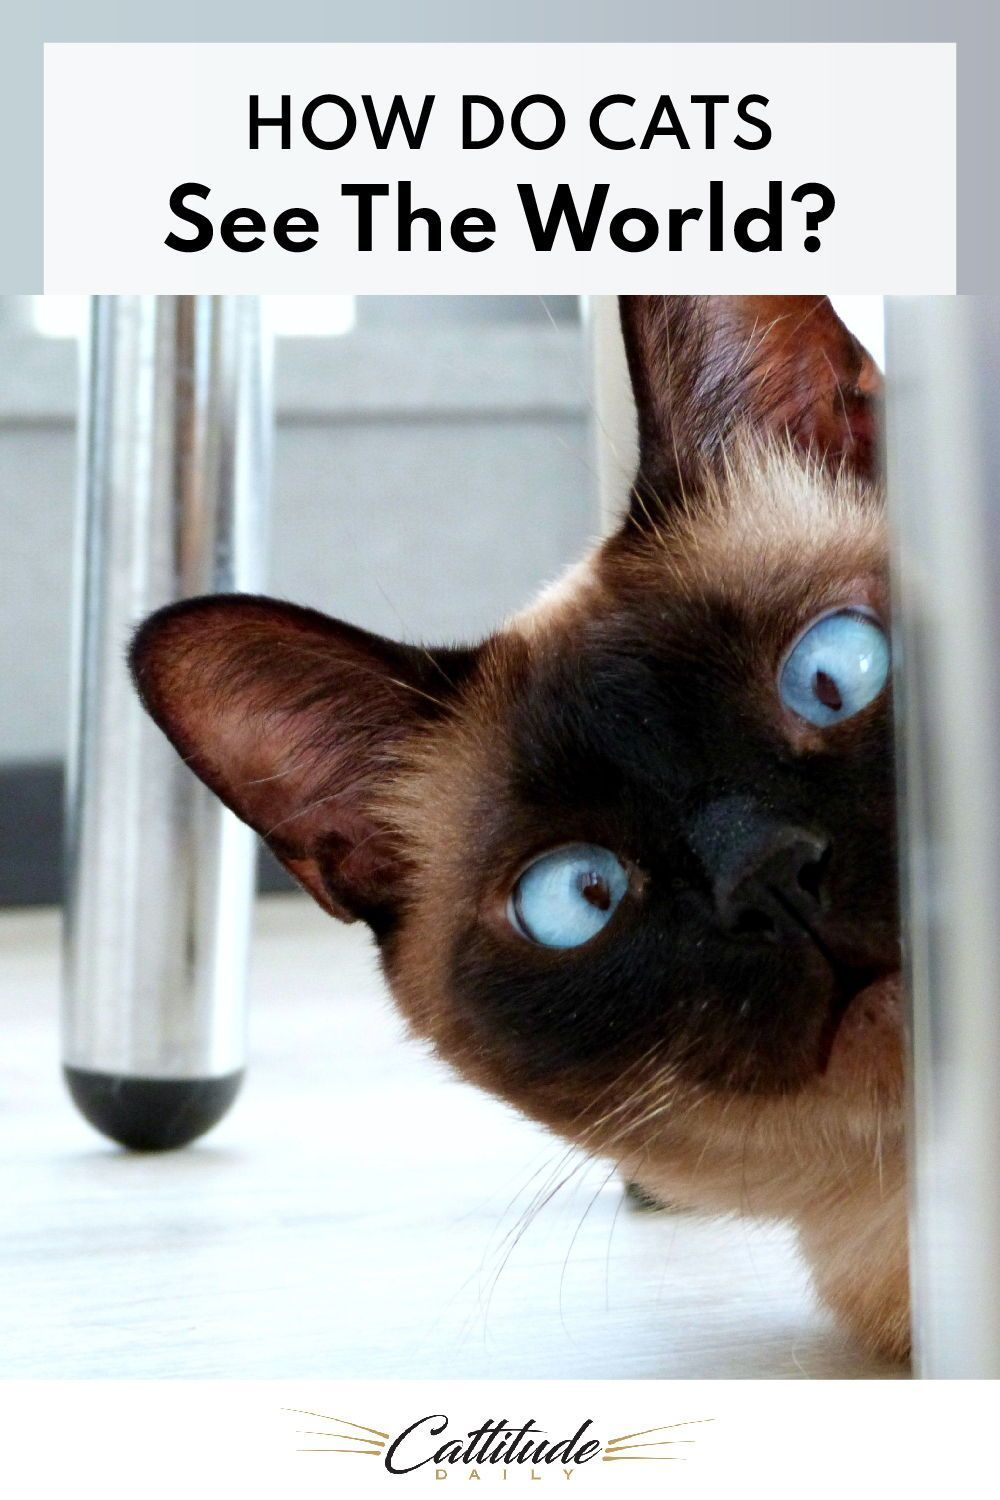 How Do Cats See The World? in 2020 Cats, Cat questions